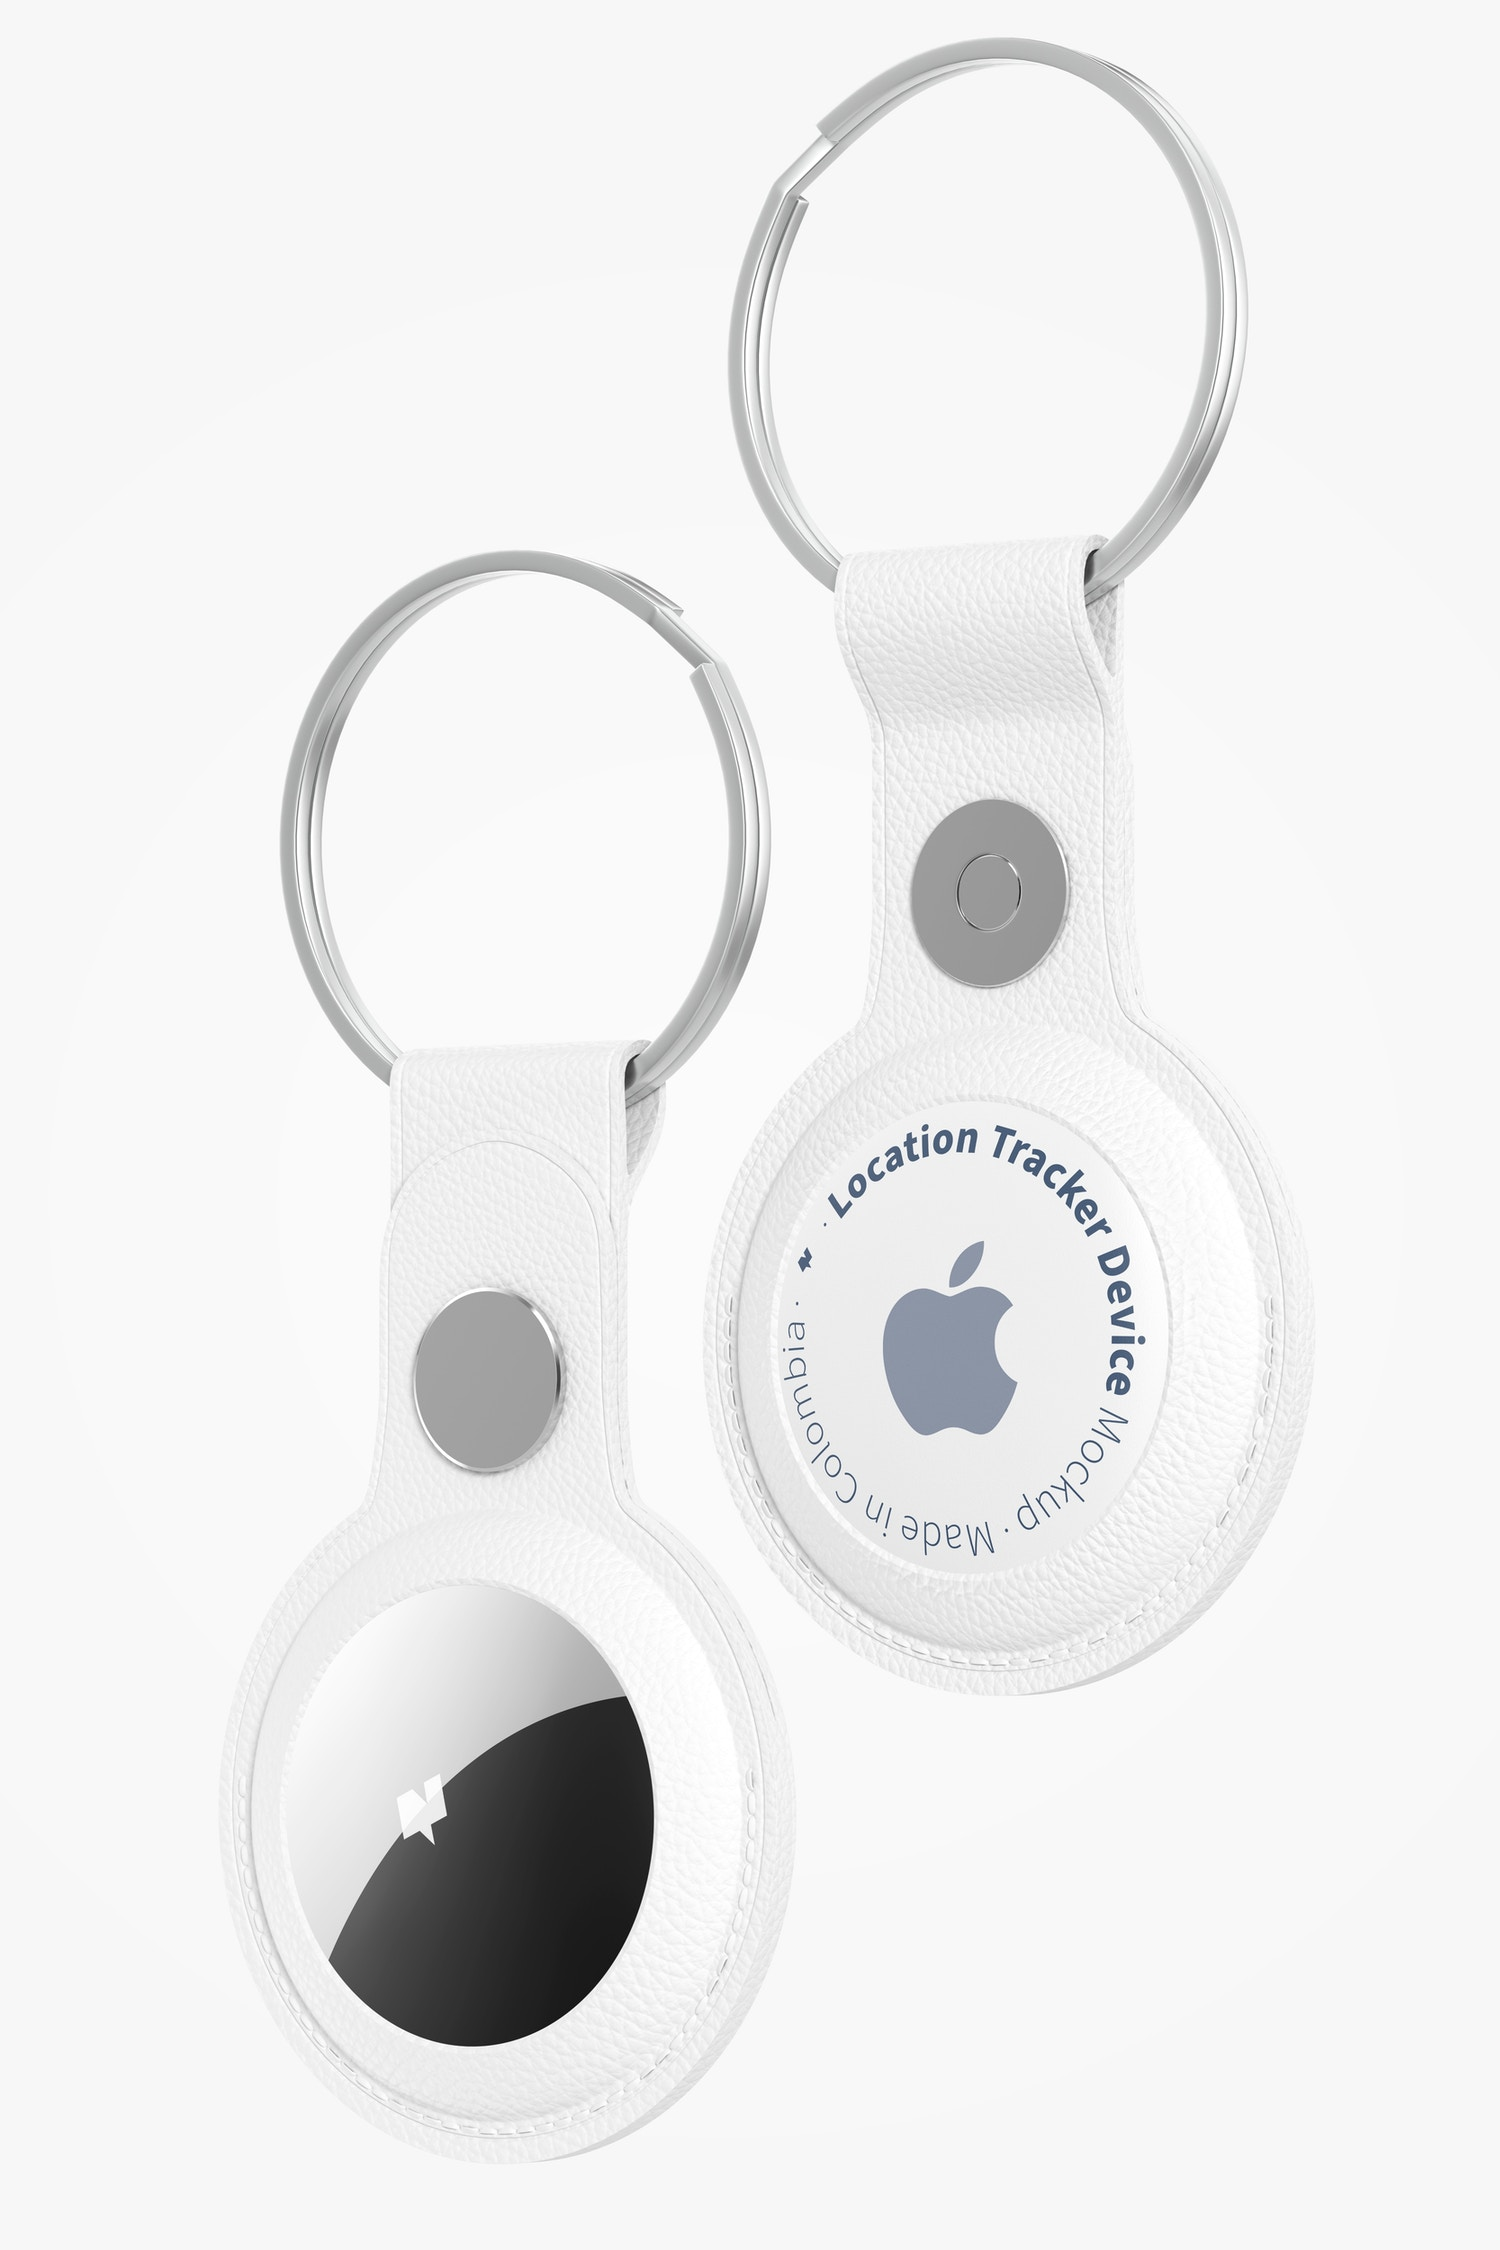 AirTags with Keychain Mockup, Floating